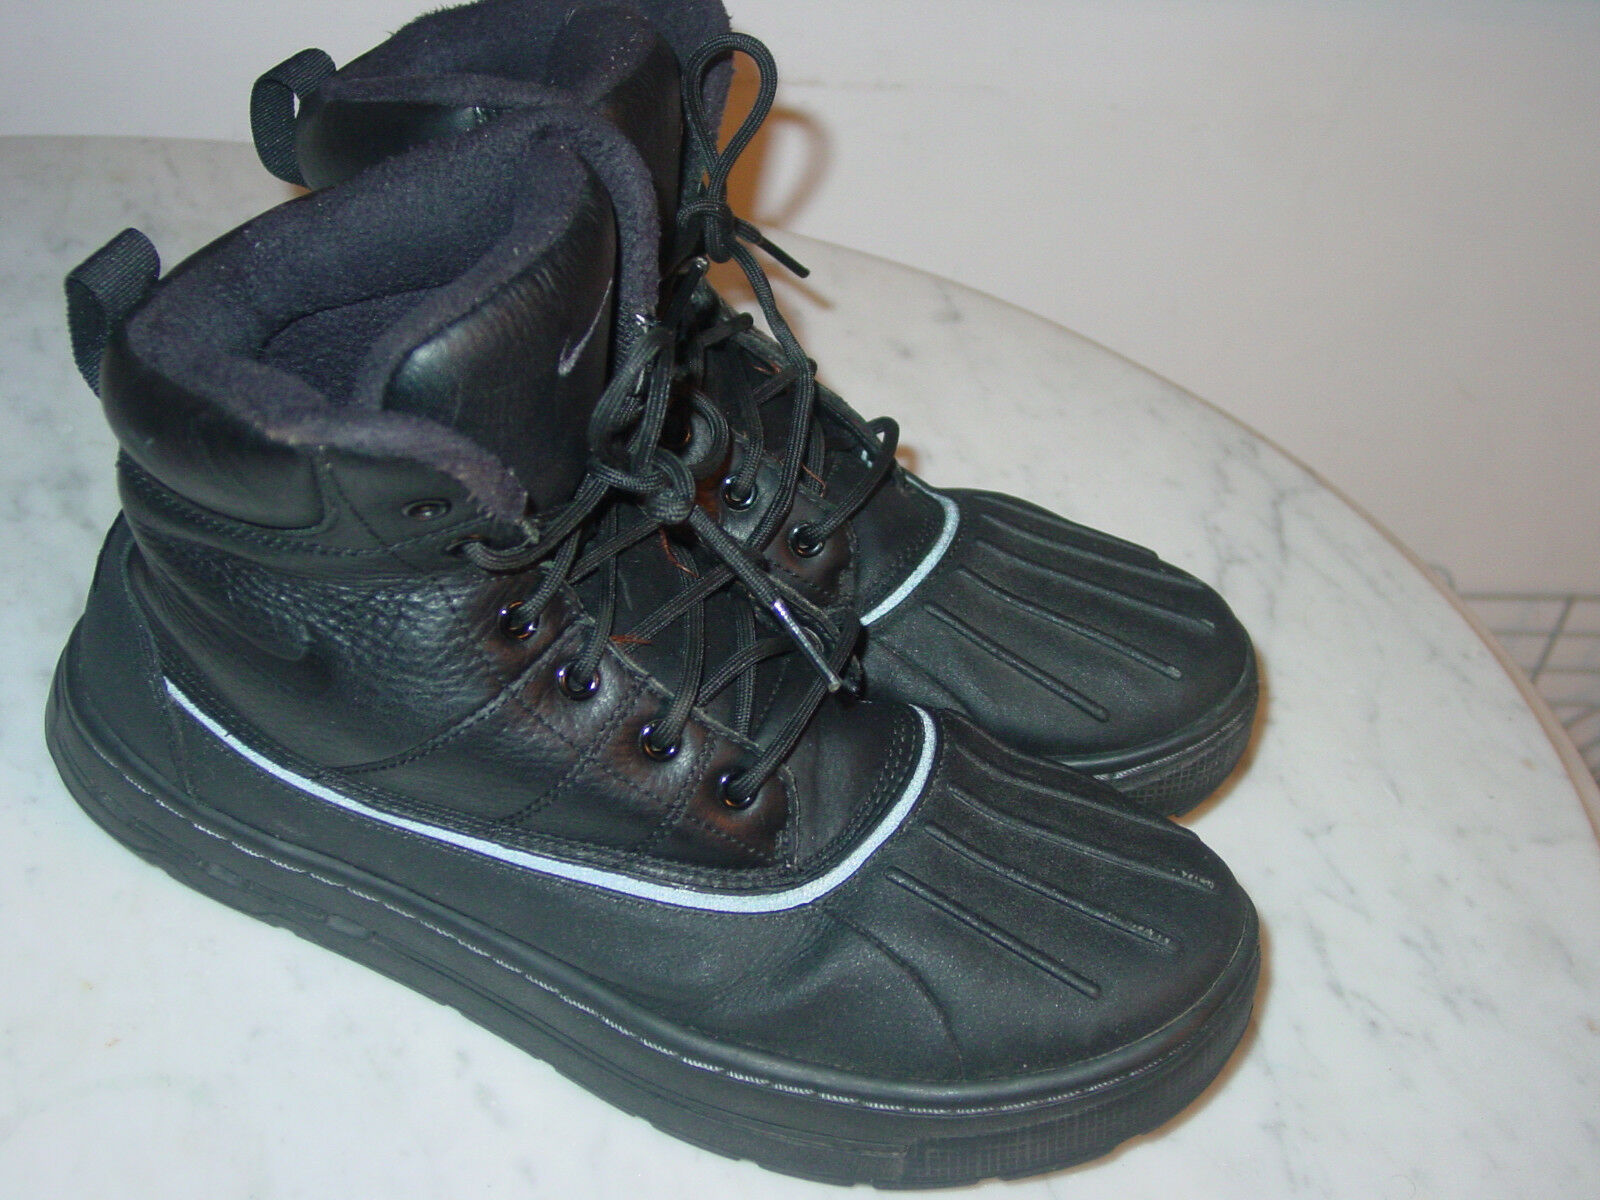 2011 Nike Nike Nike ACG Woodside Black Anthracite Waterproof Winter Boots Size 8.5  160.00 17127e